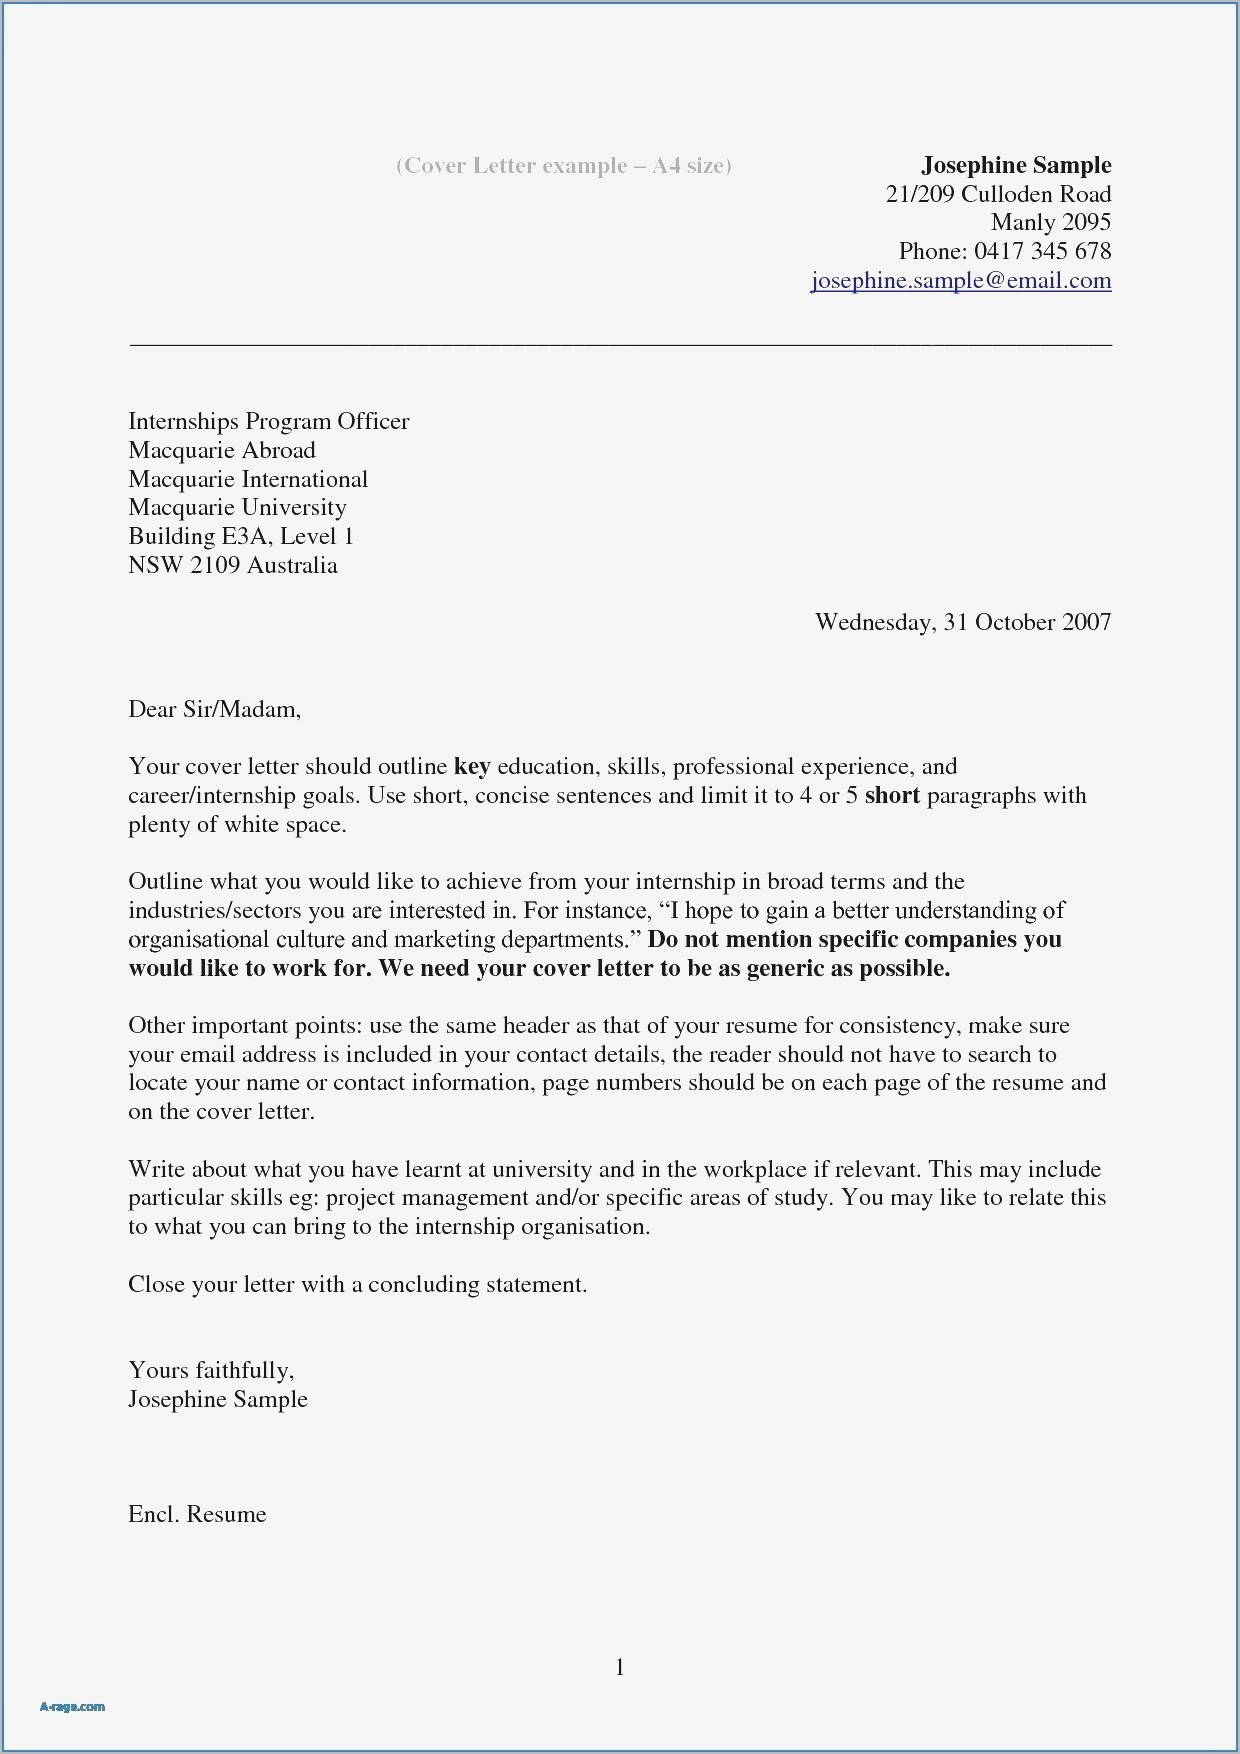 Cover Letter with Picture Template - Free Resume Cover Letter Beautiful Best Pr Resume Template Elegant